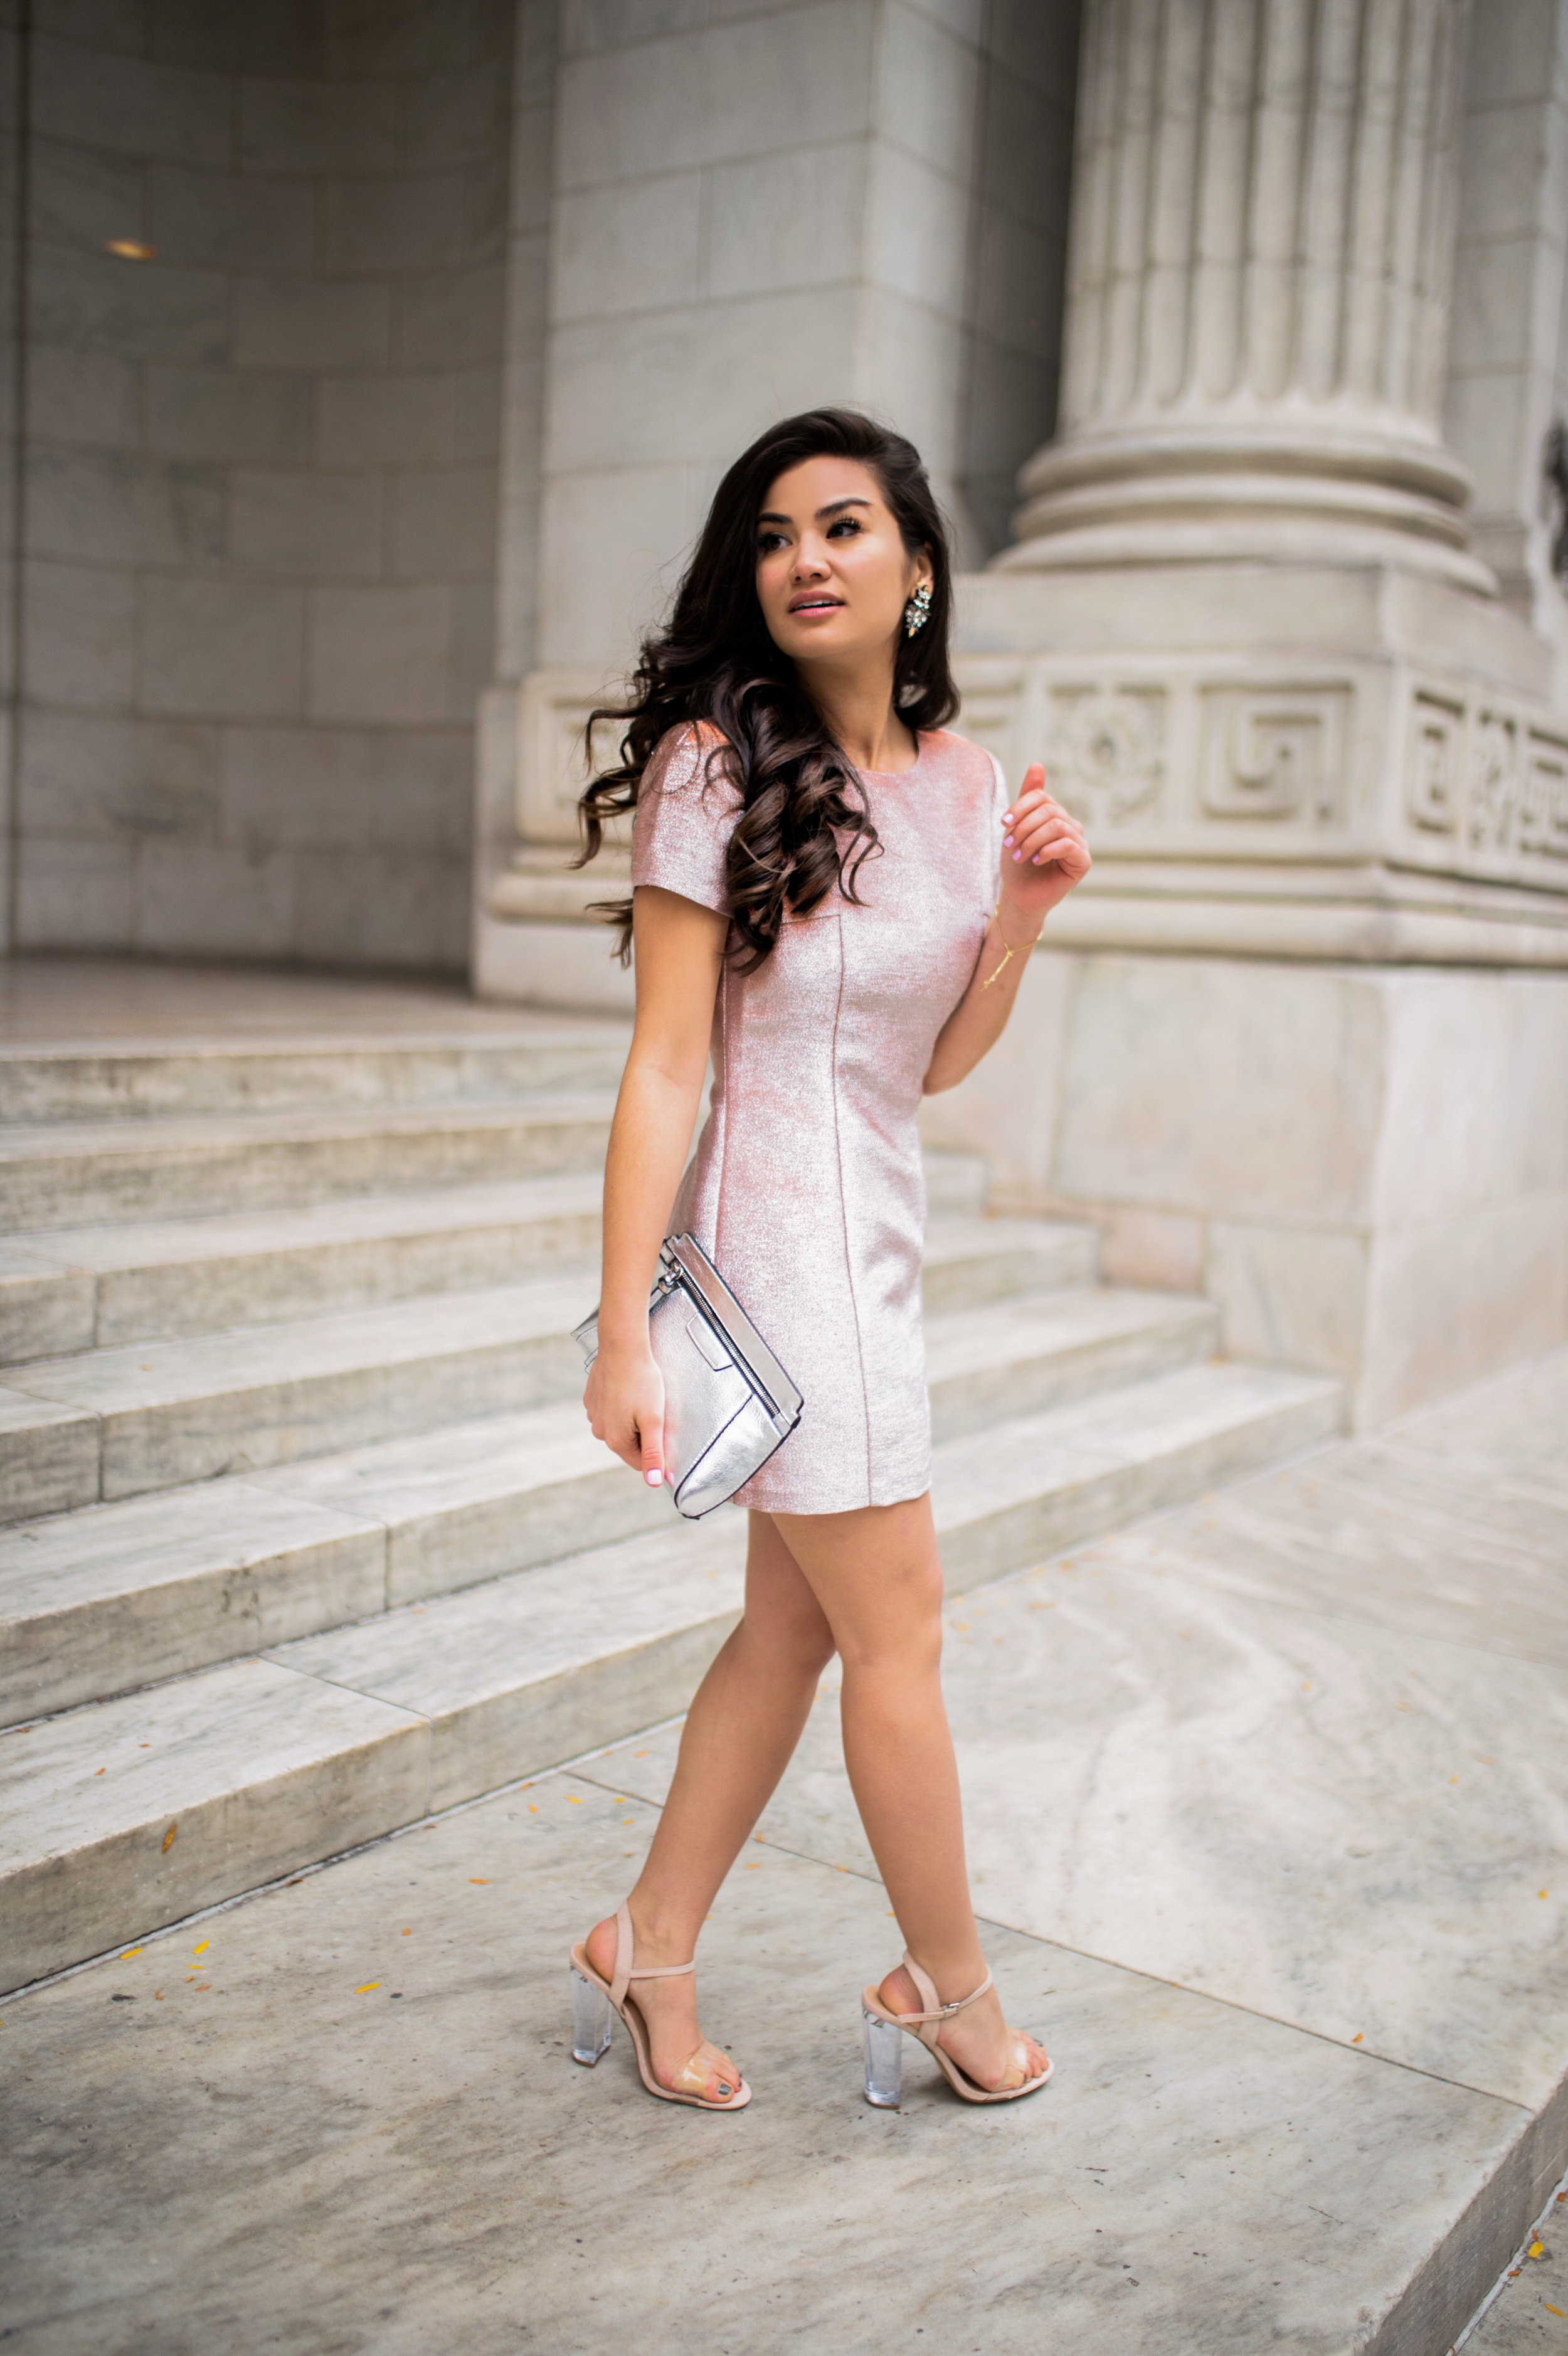 Express New York Holiday Dress with Caila Quinn